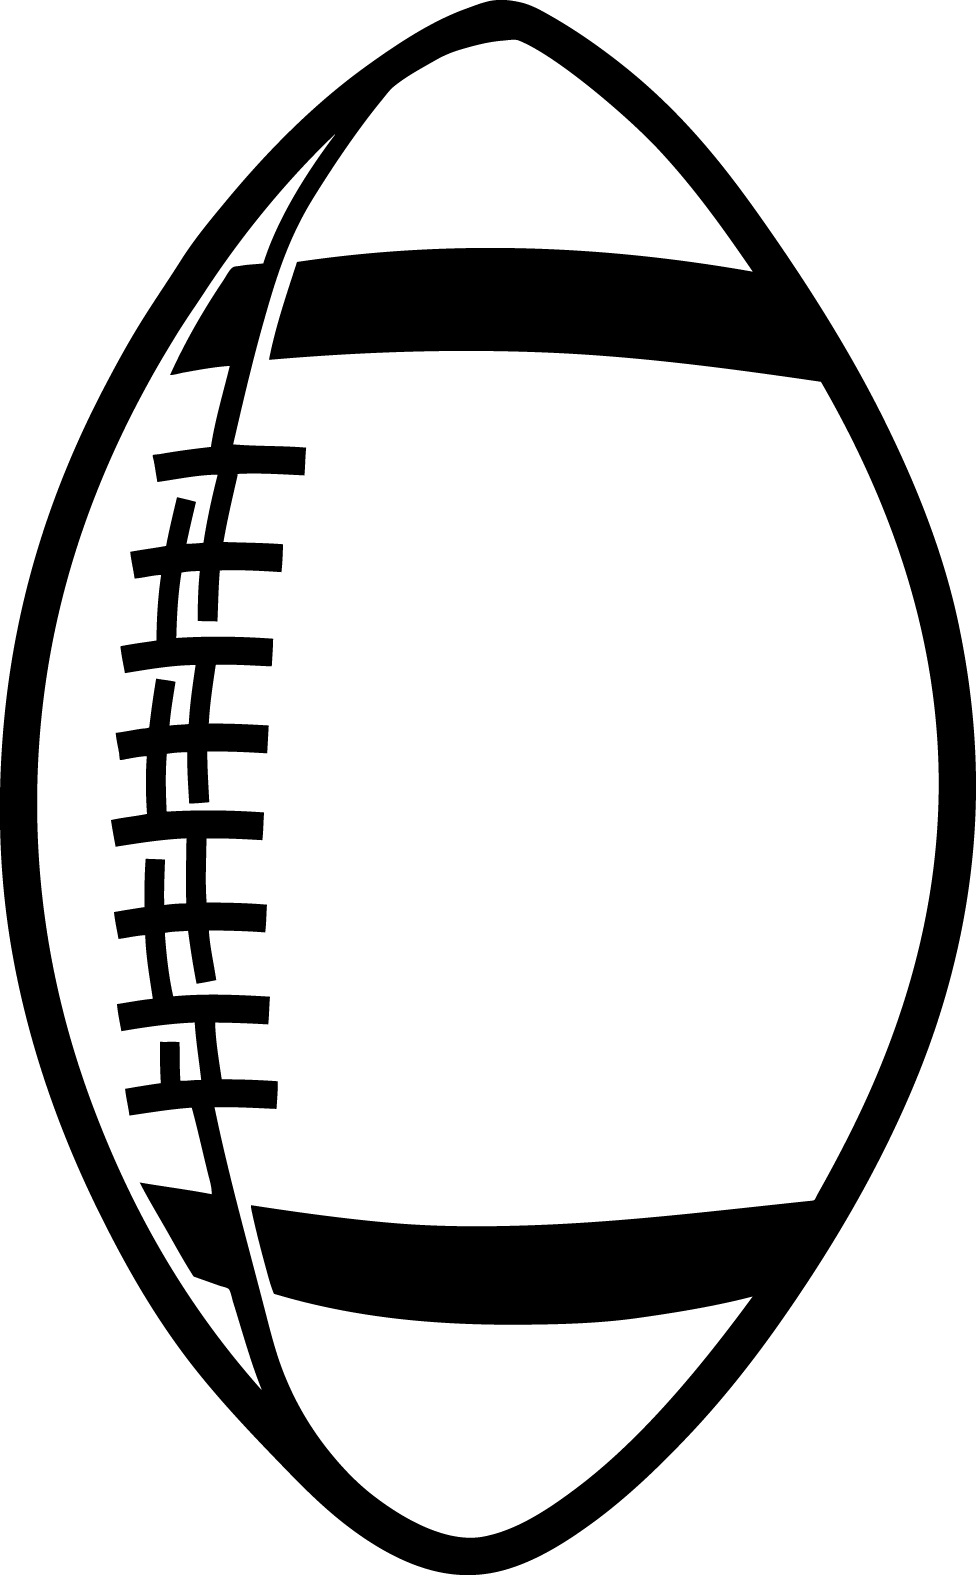 Bee football clipart jpg black and white Football Laces Clipart | Free download best Football Laces Clipart ... jpg black and white